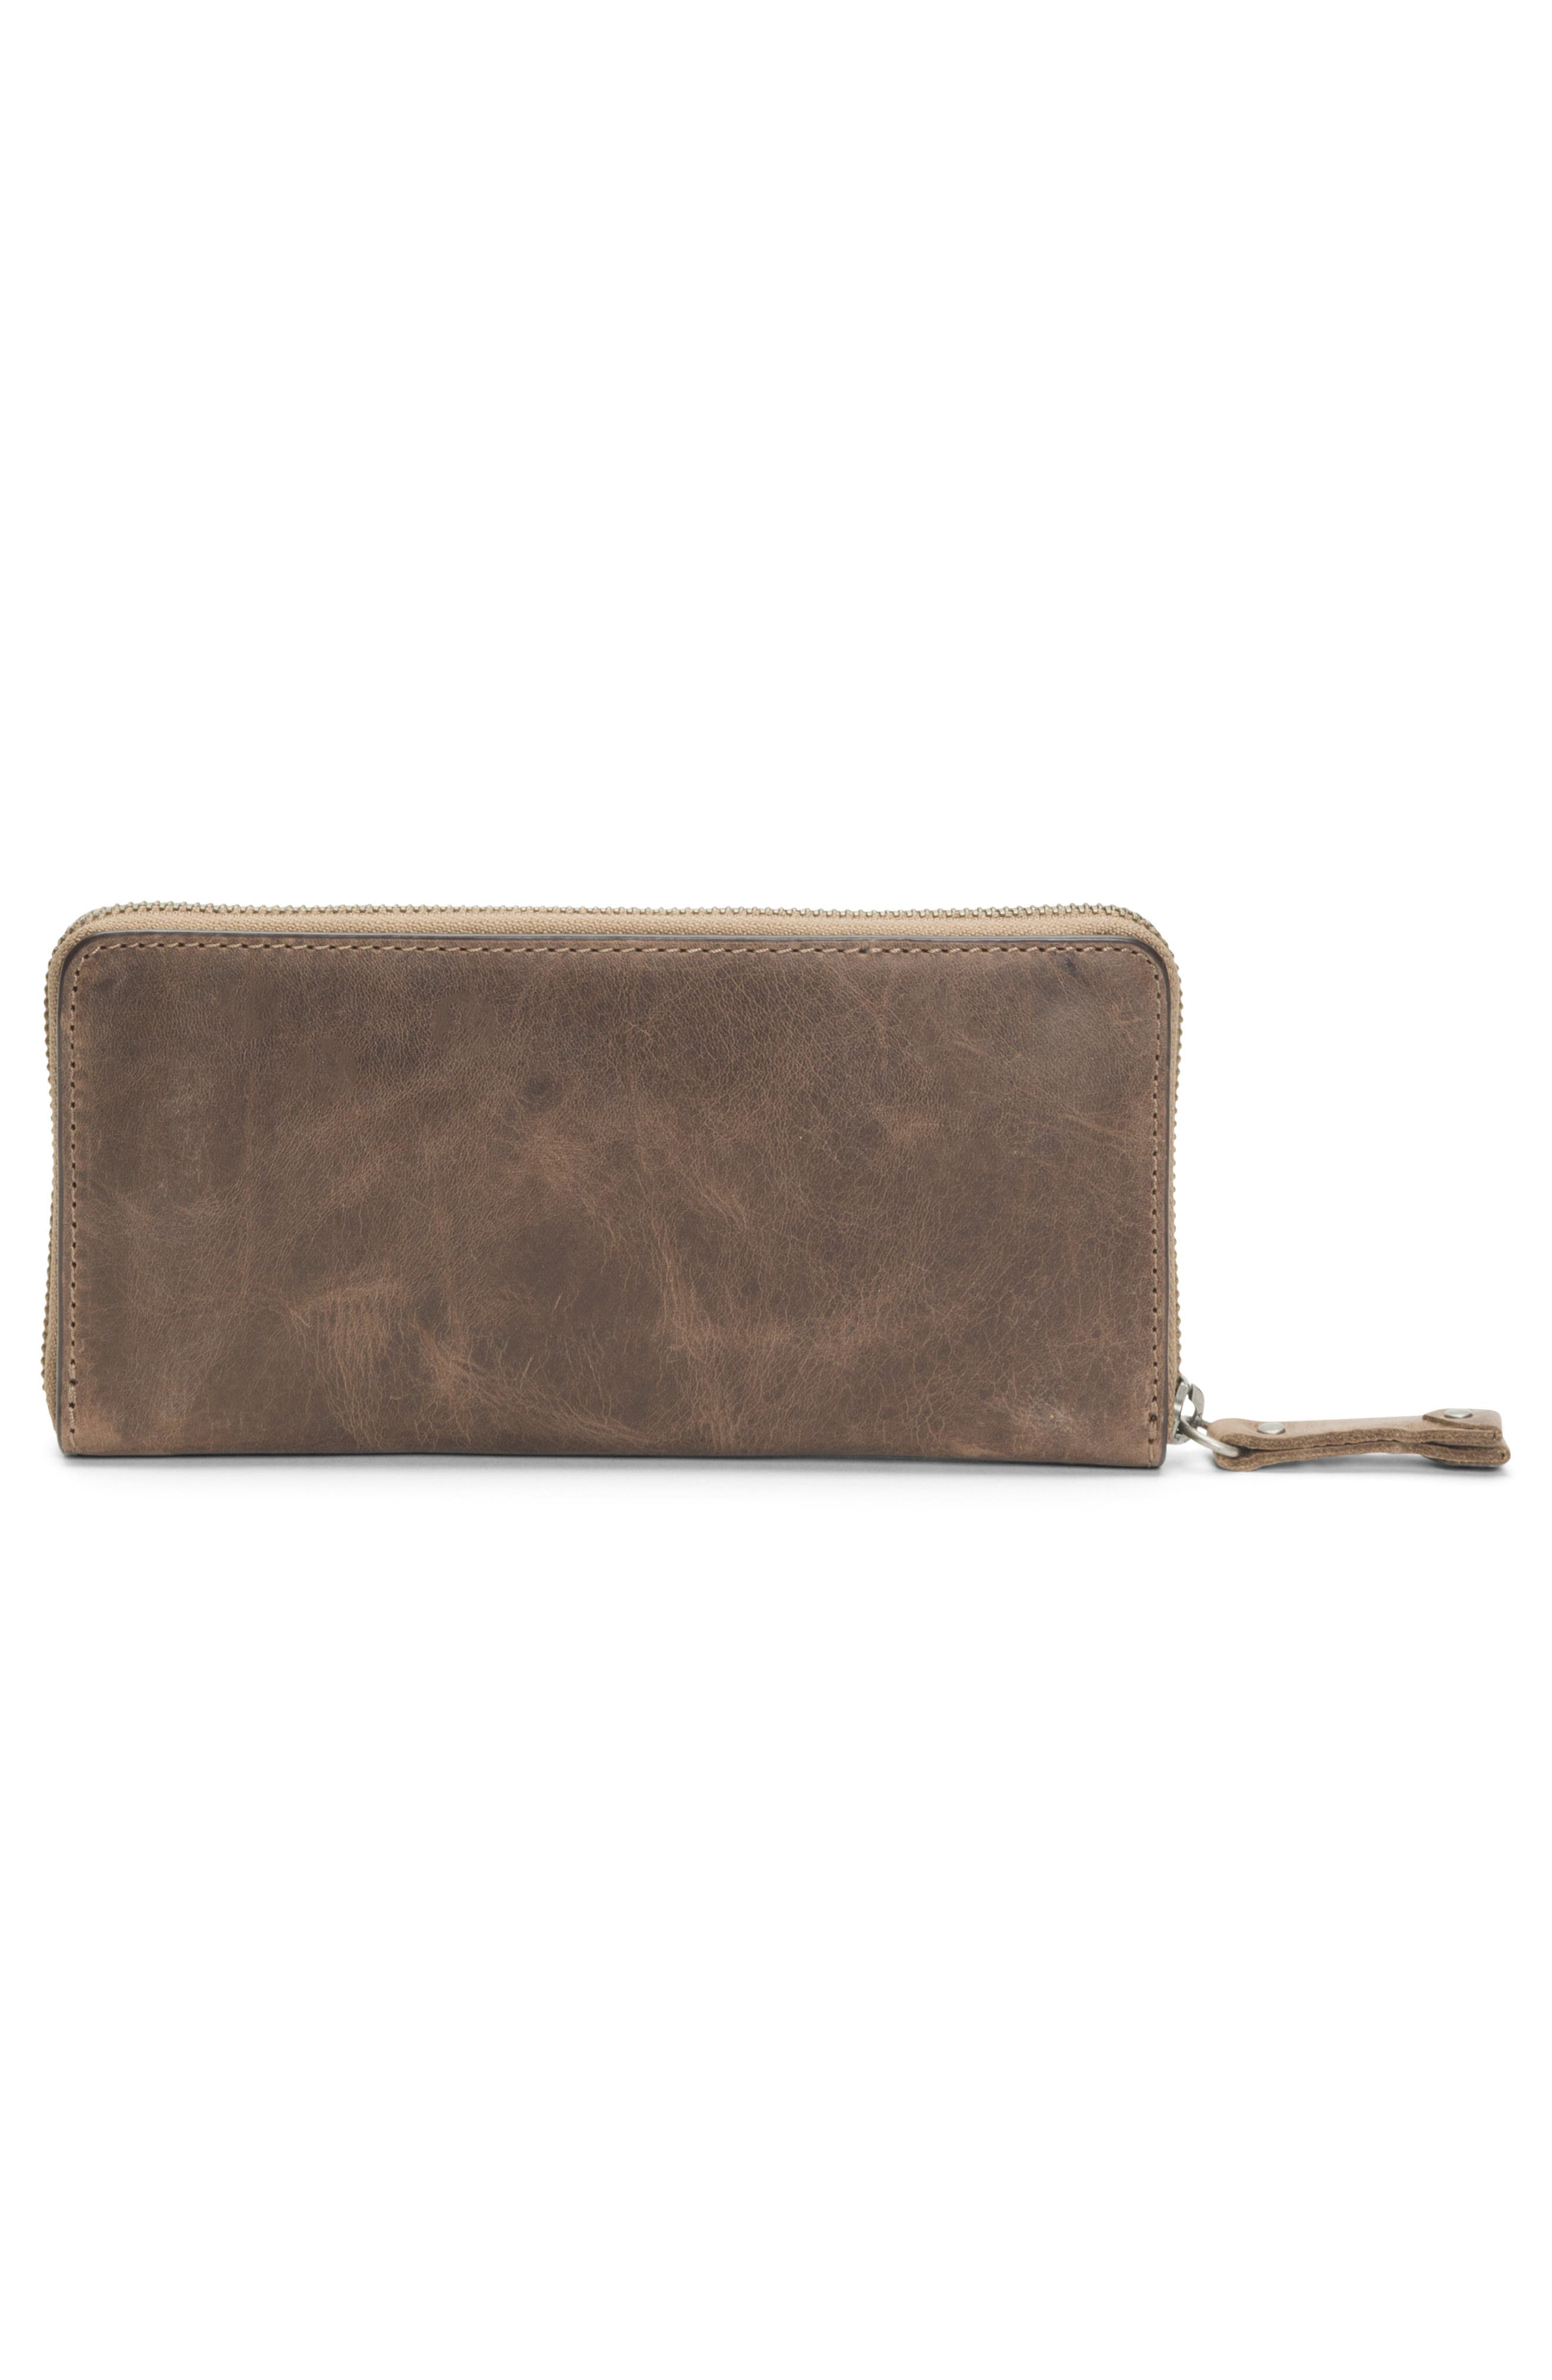 Melissa 2 Leather Zip Wallet,                             Alternate thumbnail 3, color,                             GREY